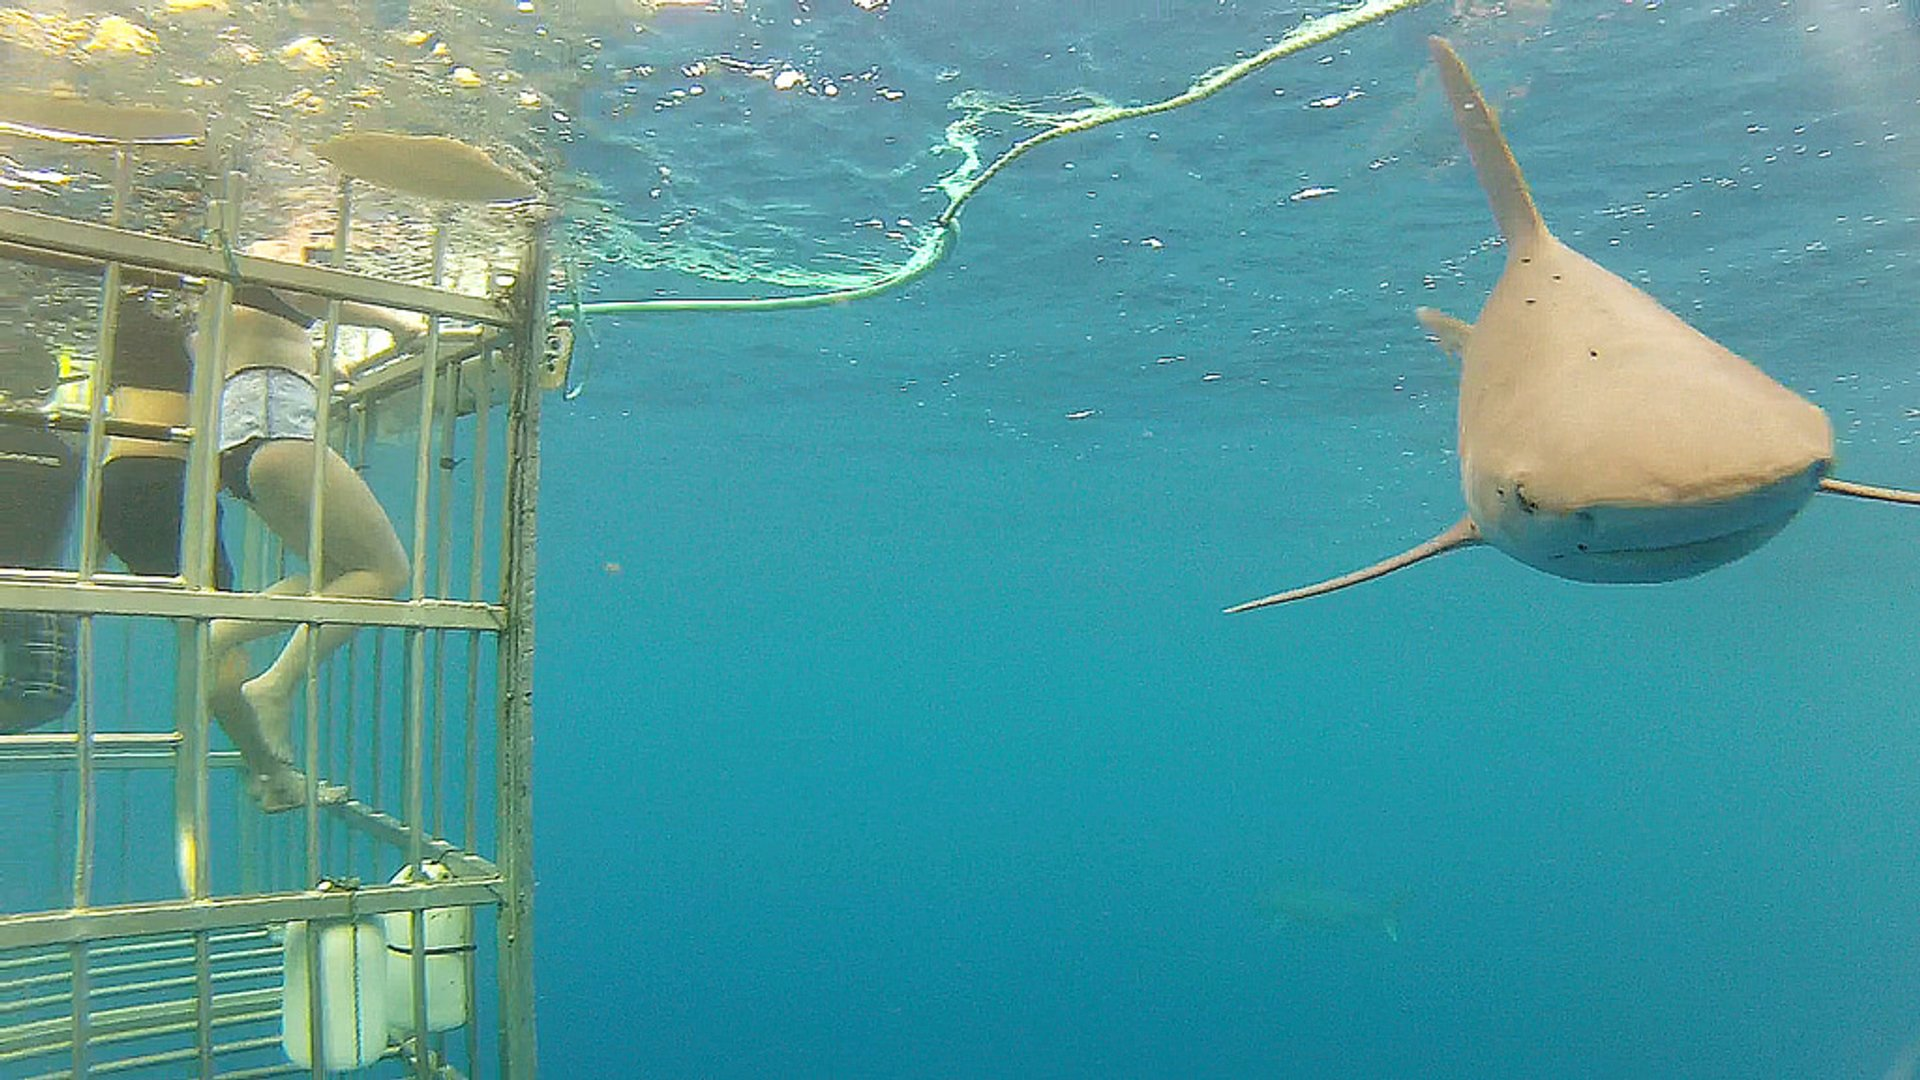 Shark Cage Dive, Haleiwa, Hawaii 2020